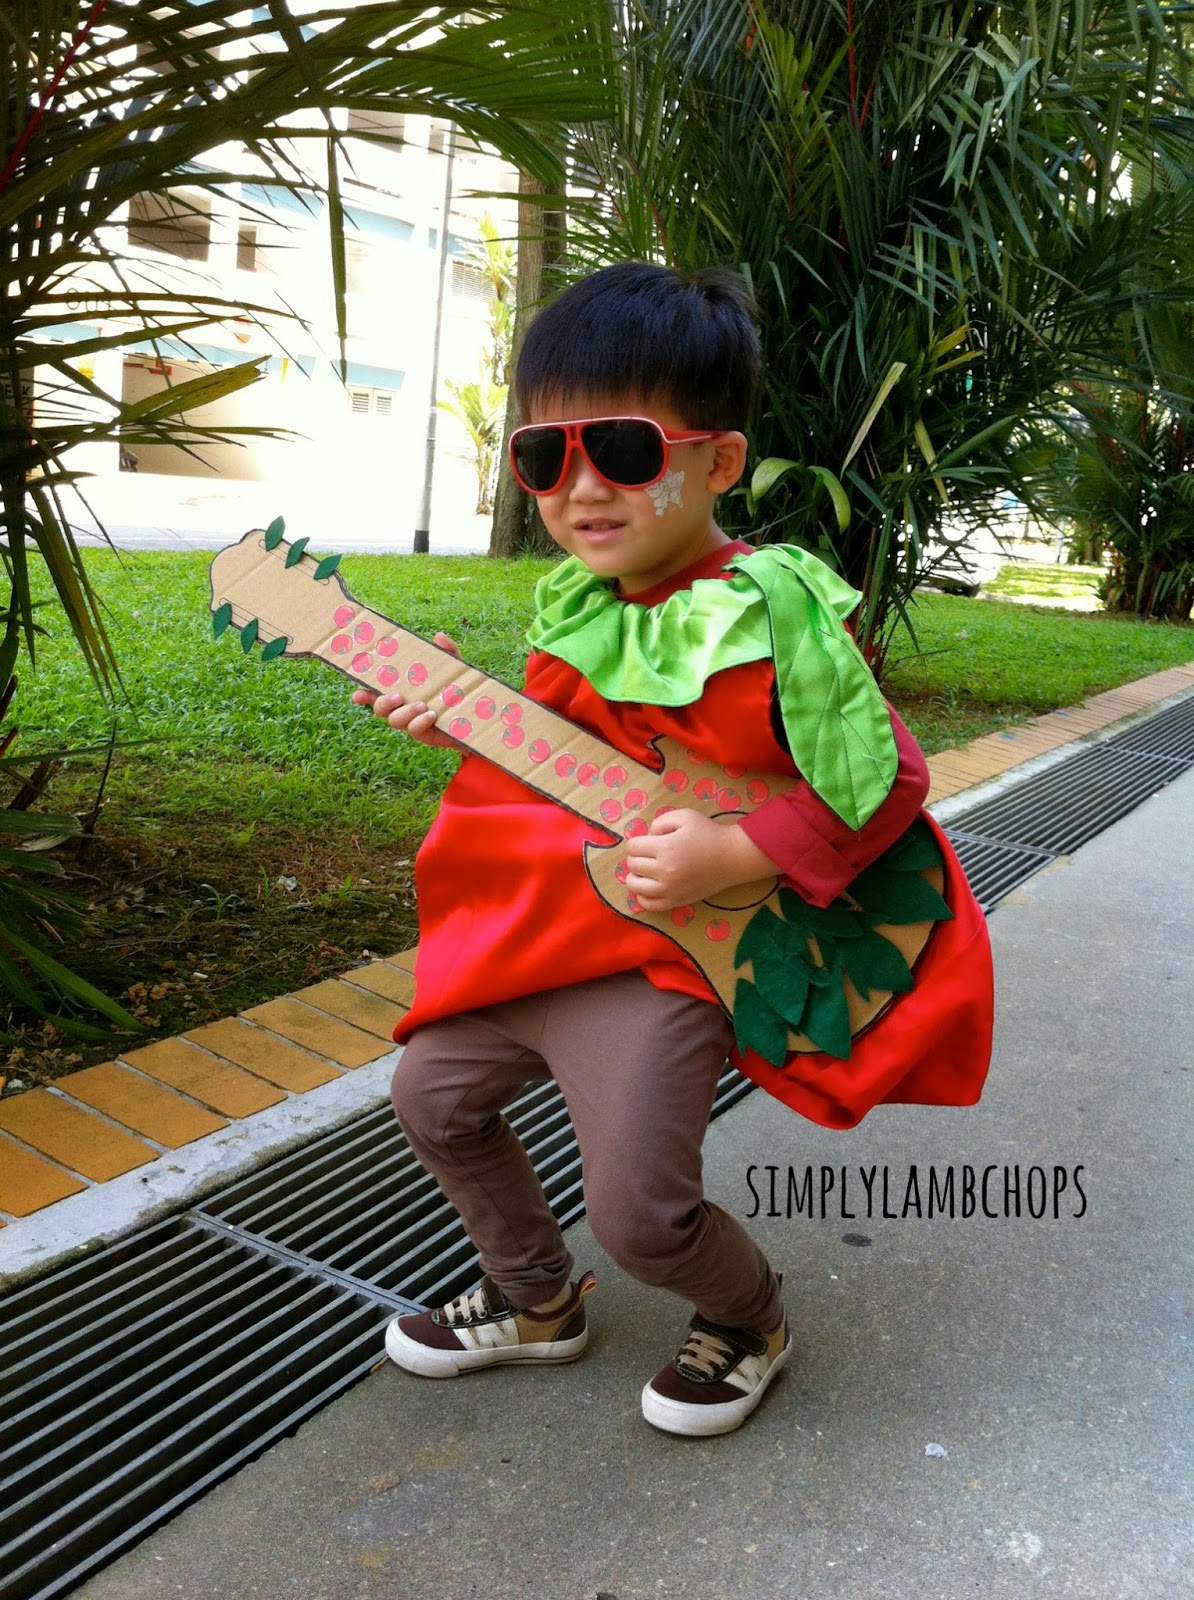 Homemade tomato rockstar child costume by Simply Lambchops